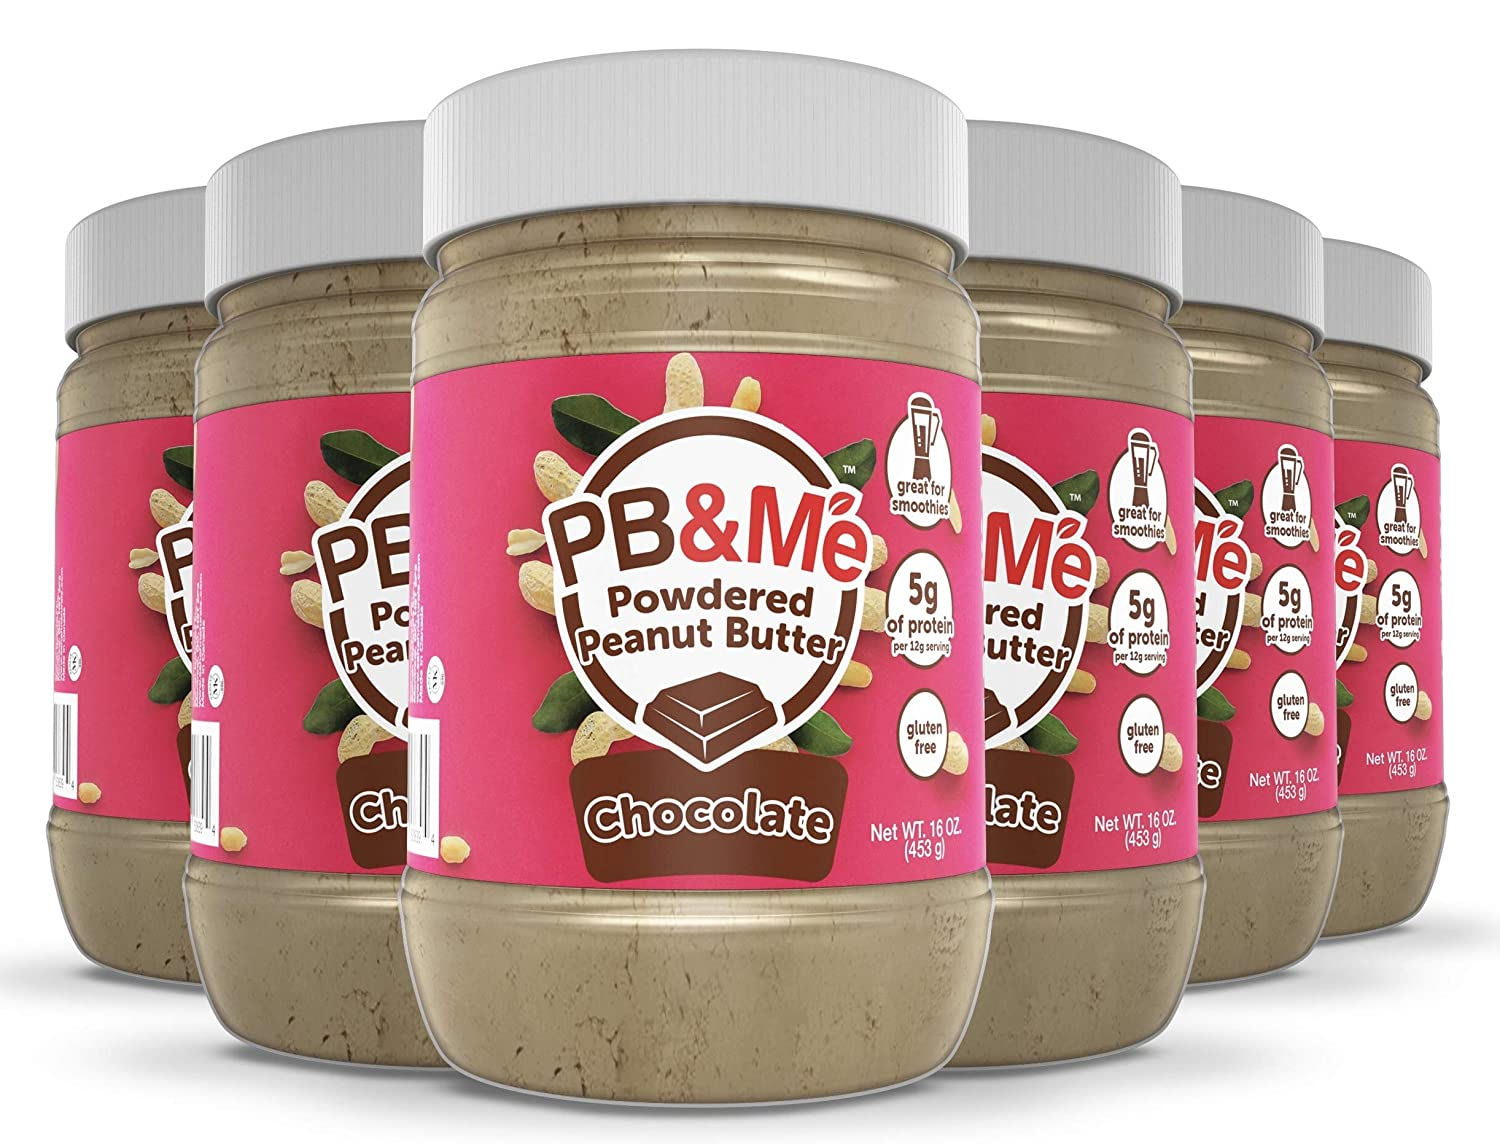 PB&Me Powdered Peanut Spread, Keto Snack, Gluten Free, Plant Protein, 16 Ounce (Chocolate, Pack of 6)